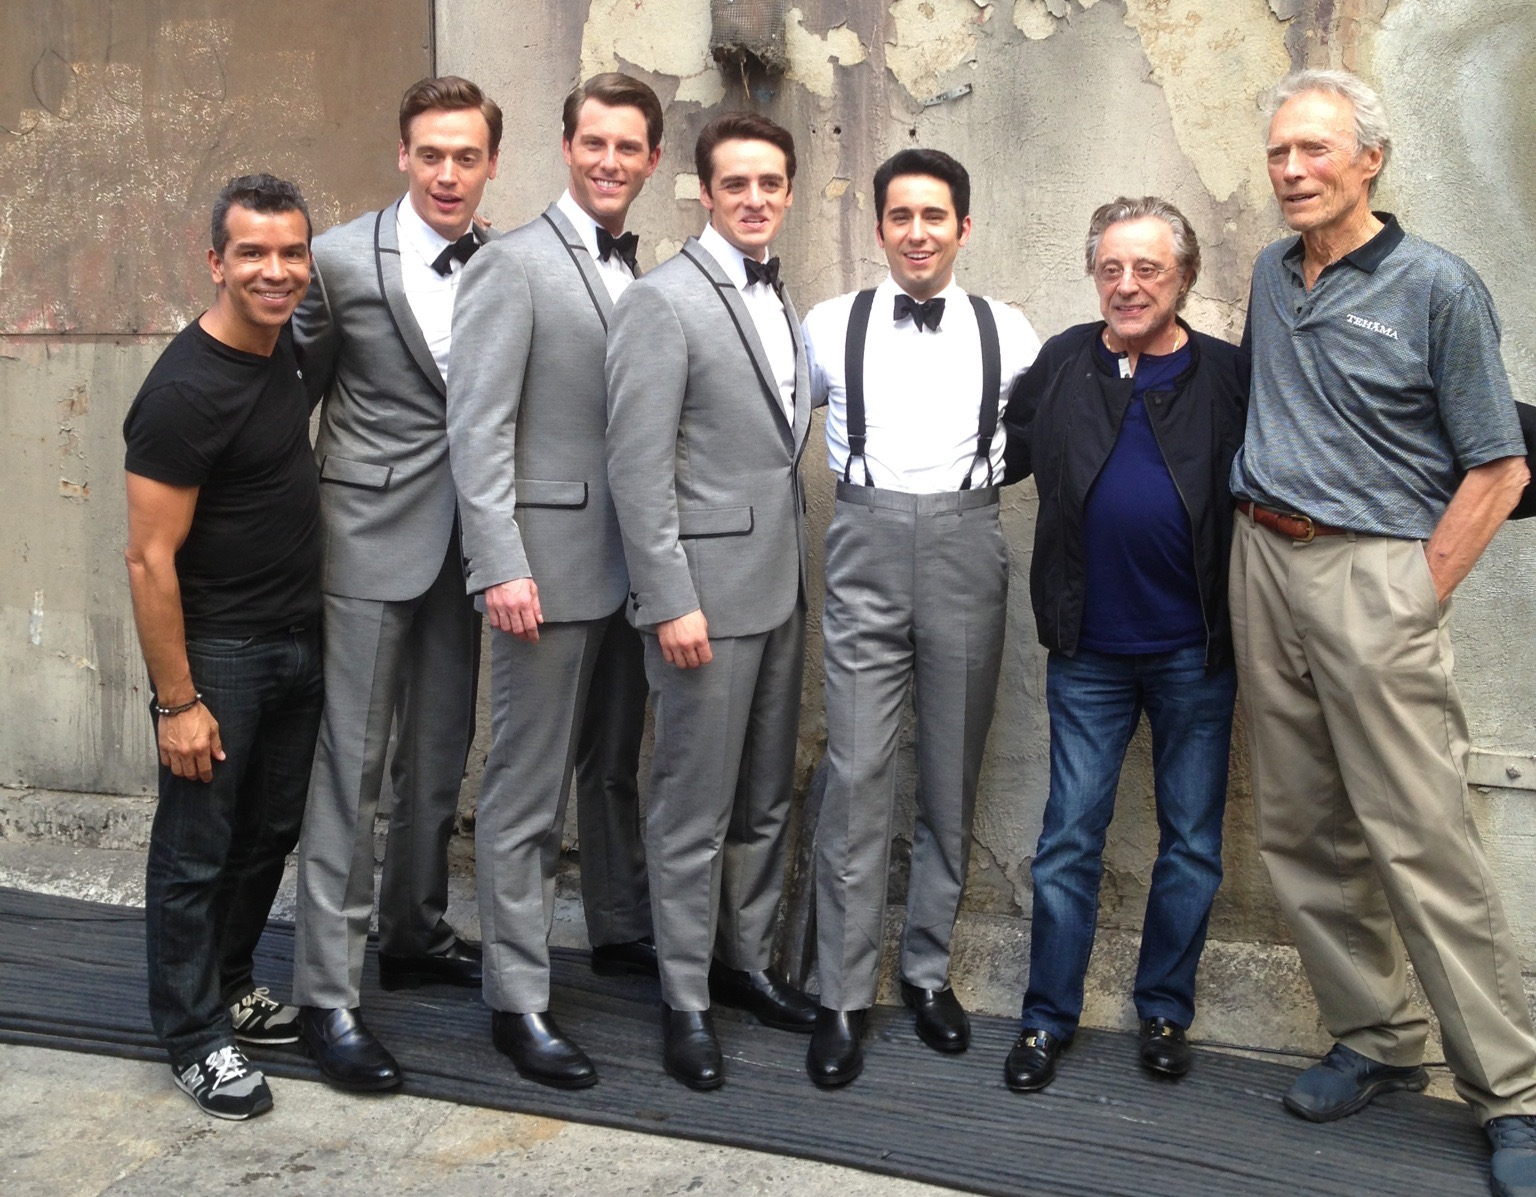 With our choreographer, Sergio Trujillo, Frankie Valli, and Mr. Eastwood